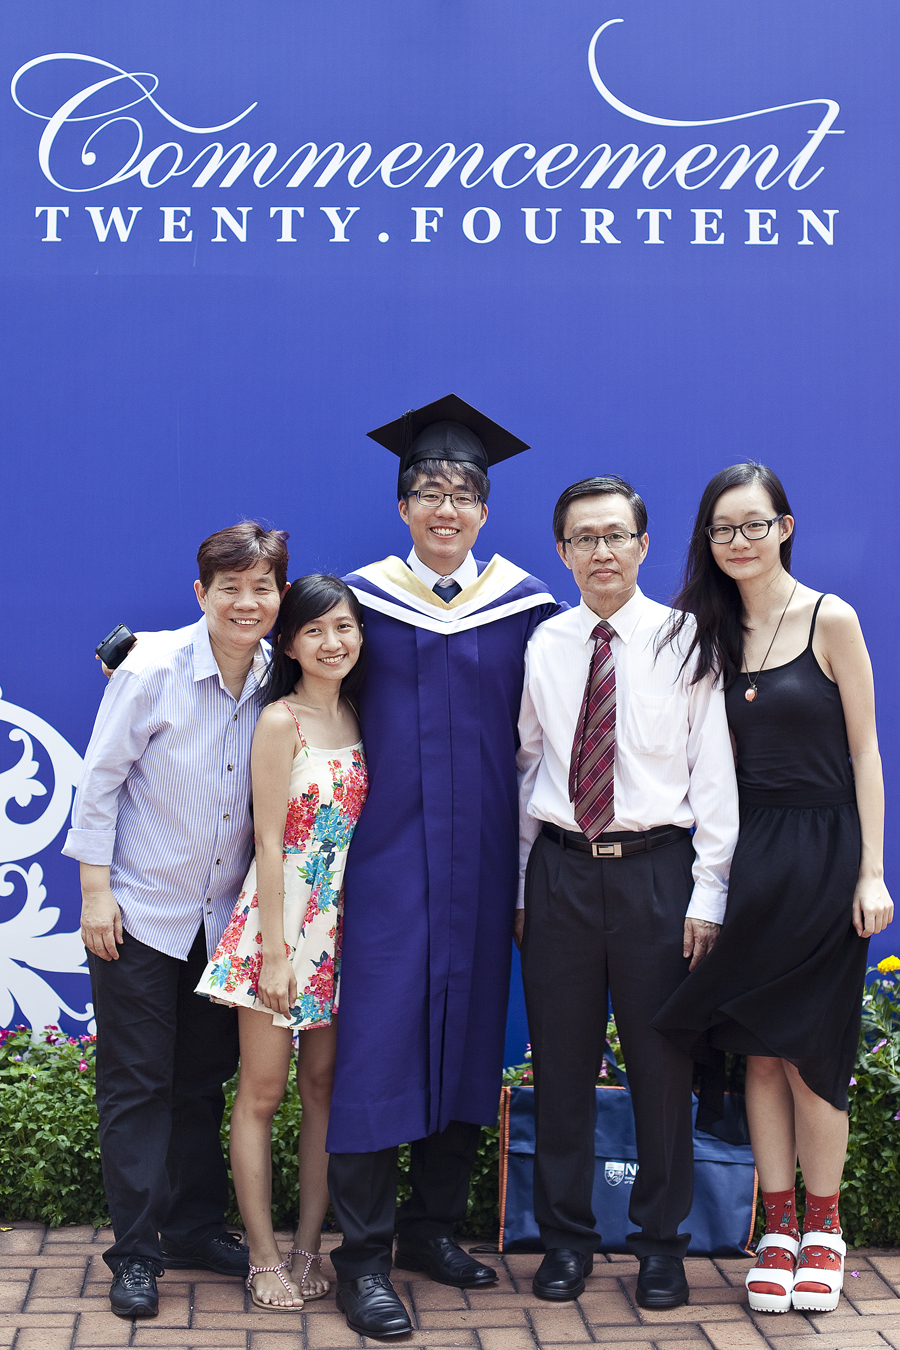 Ren and family at the NUS Commencement 2014.